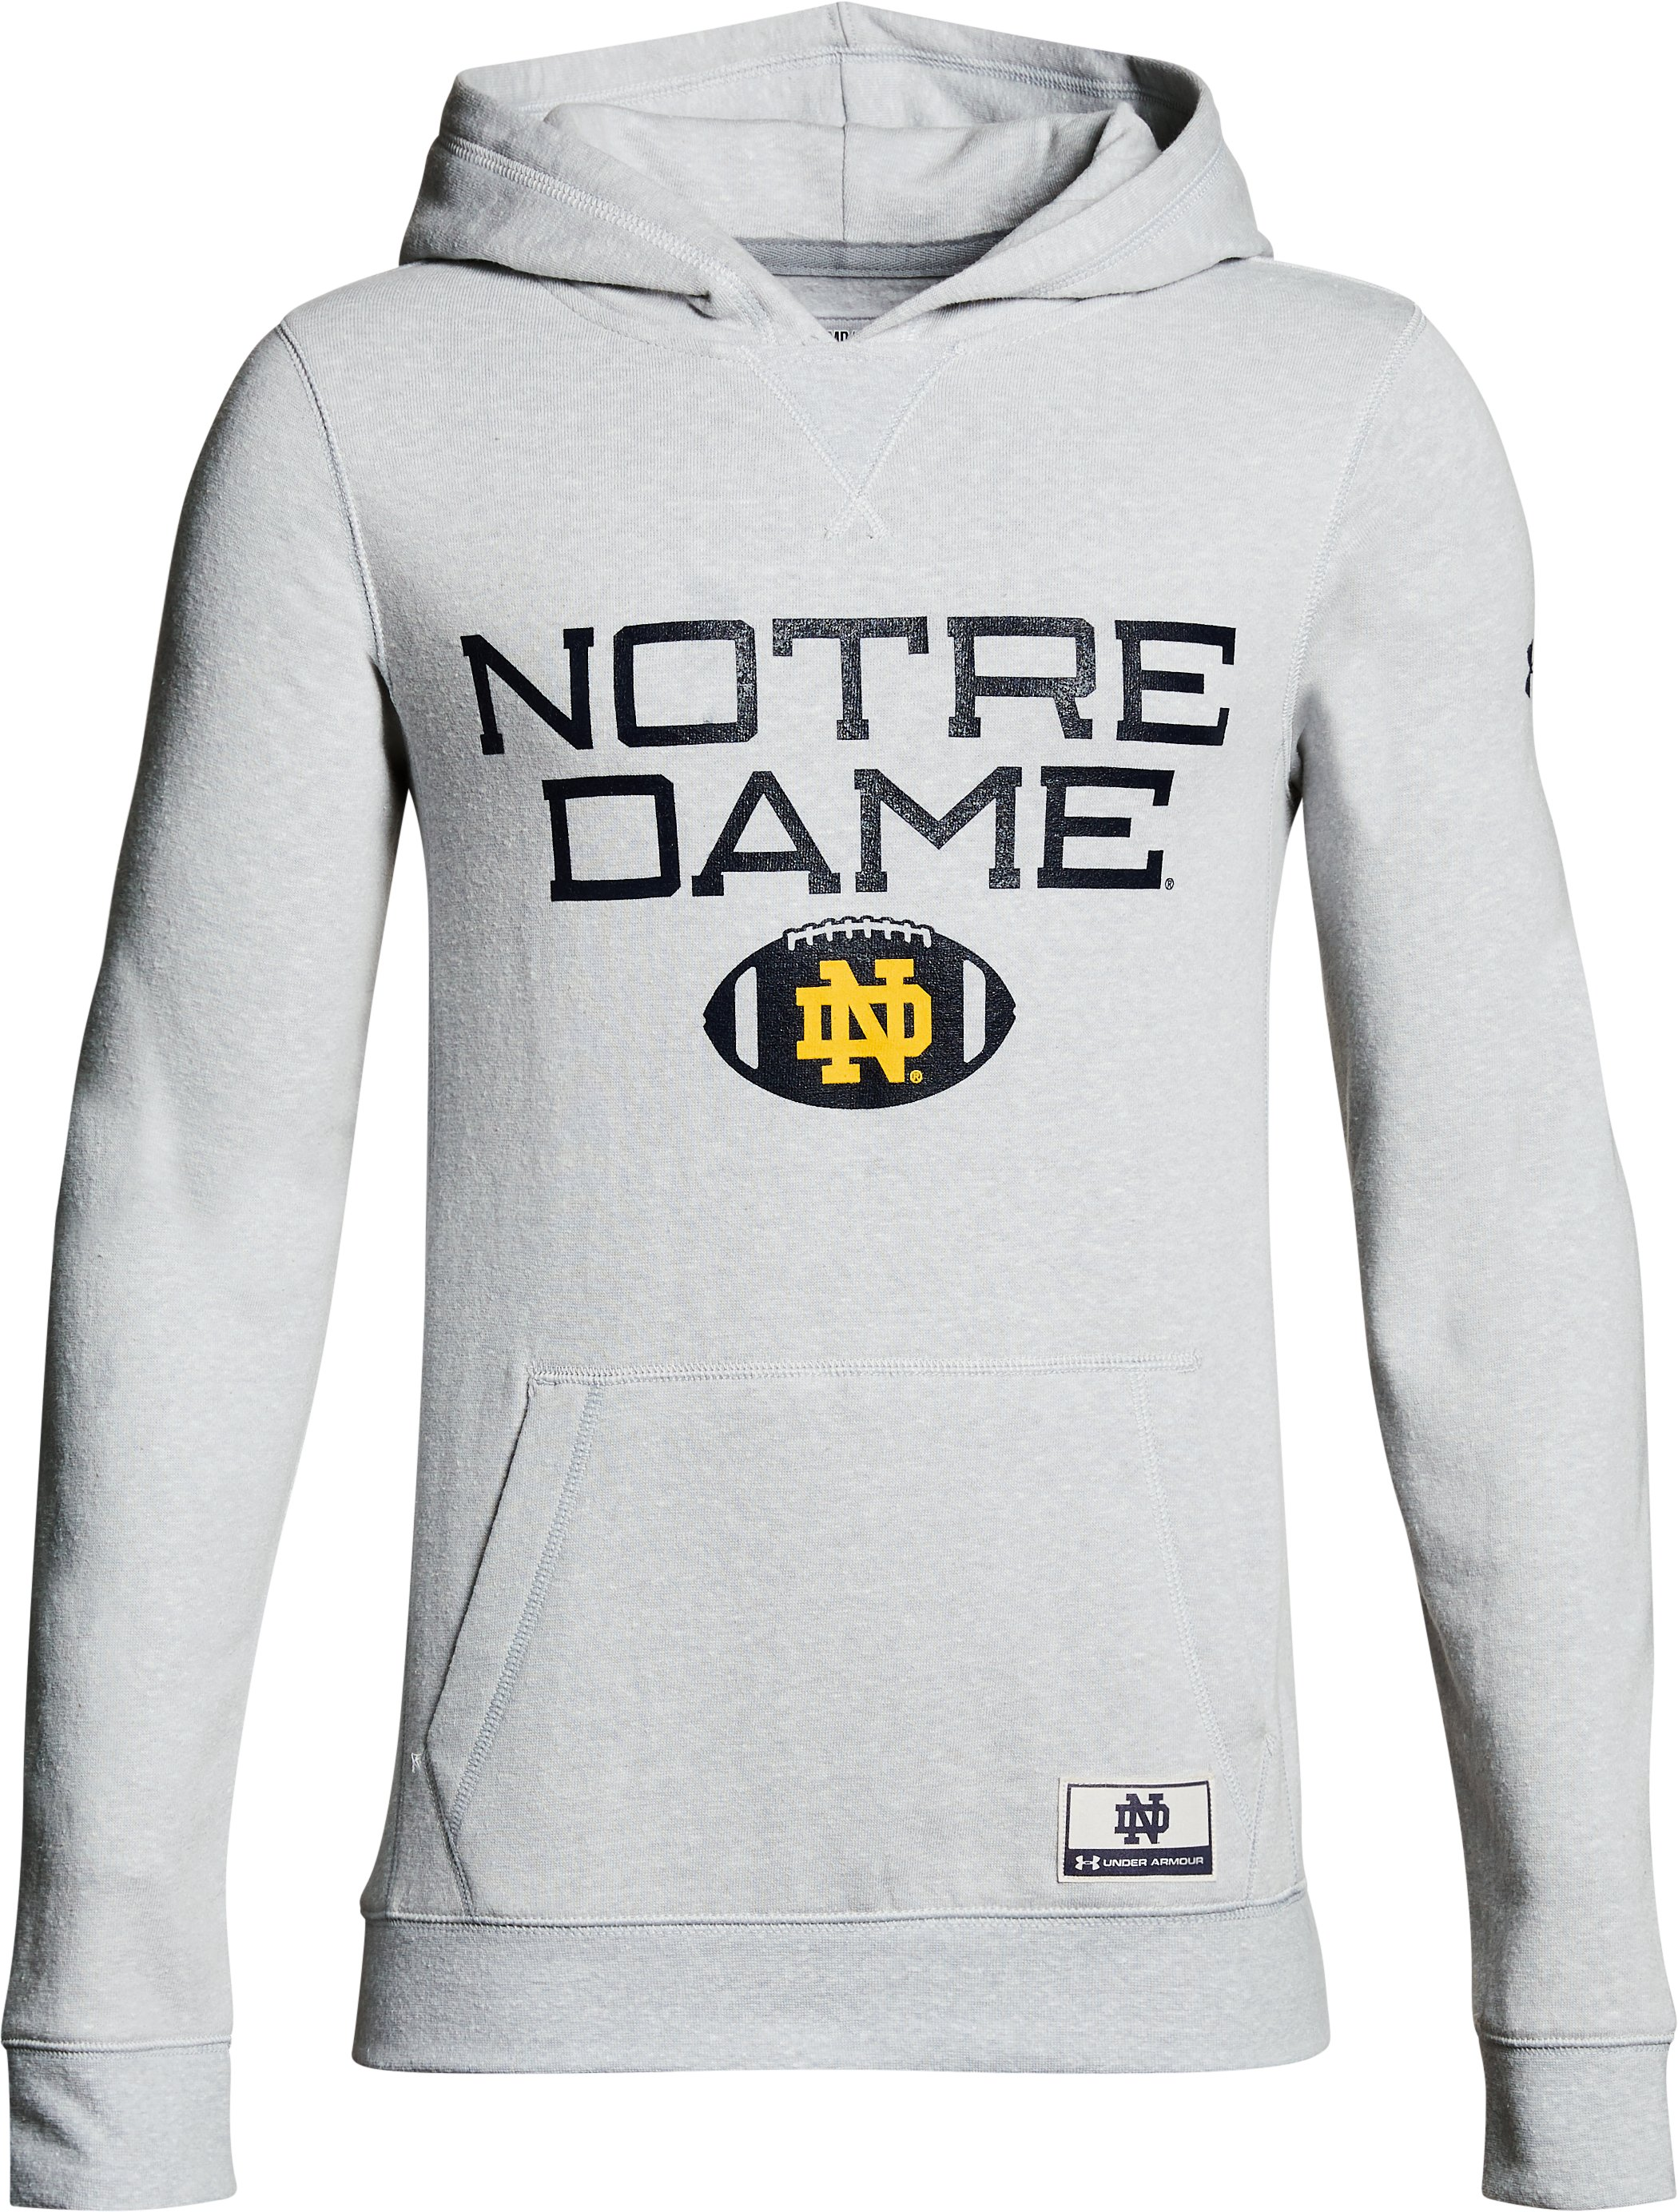 Boy's Notre Dame Iconic Hoodie, Gray, zoomed image